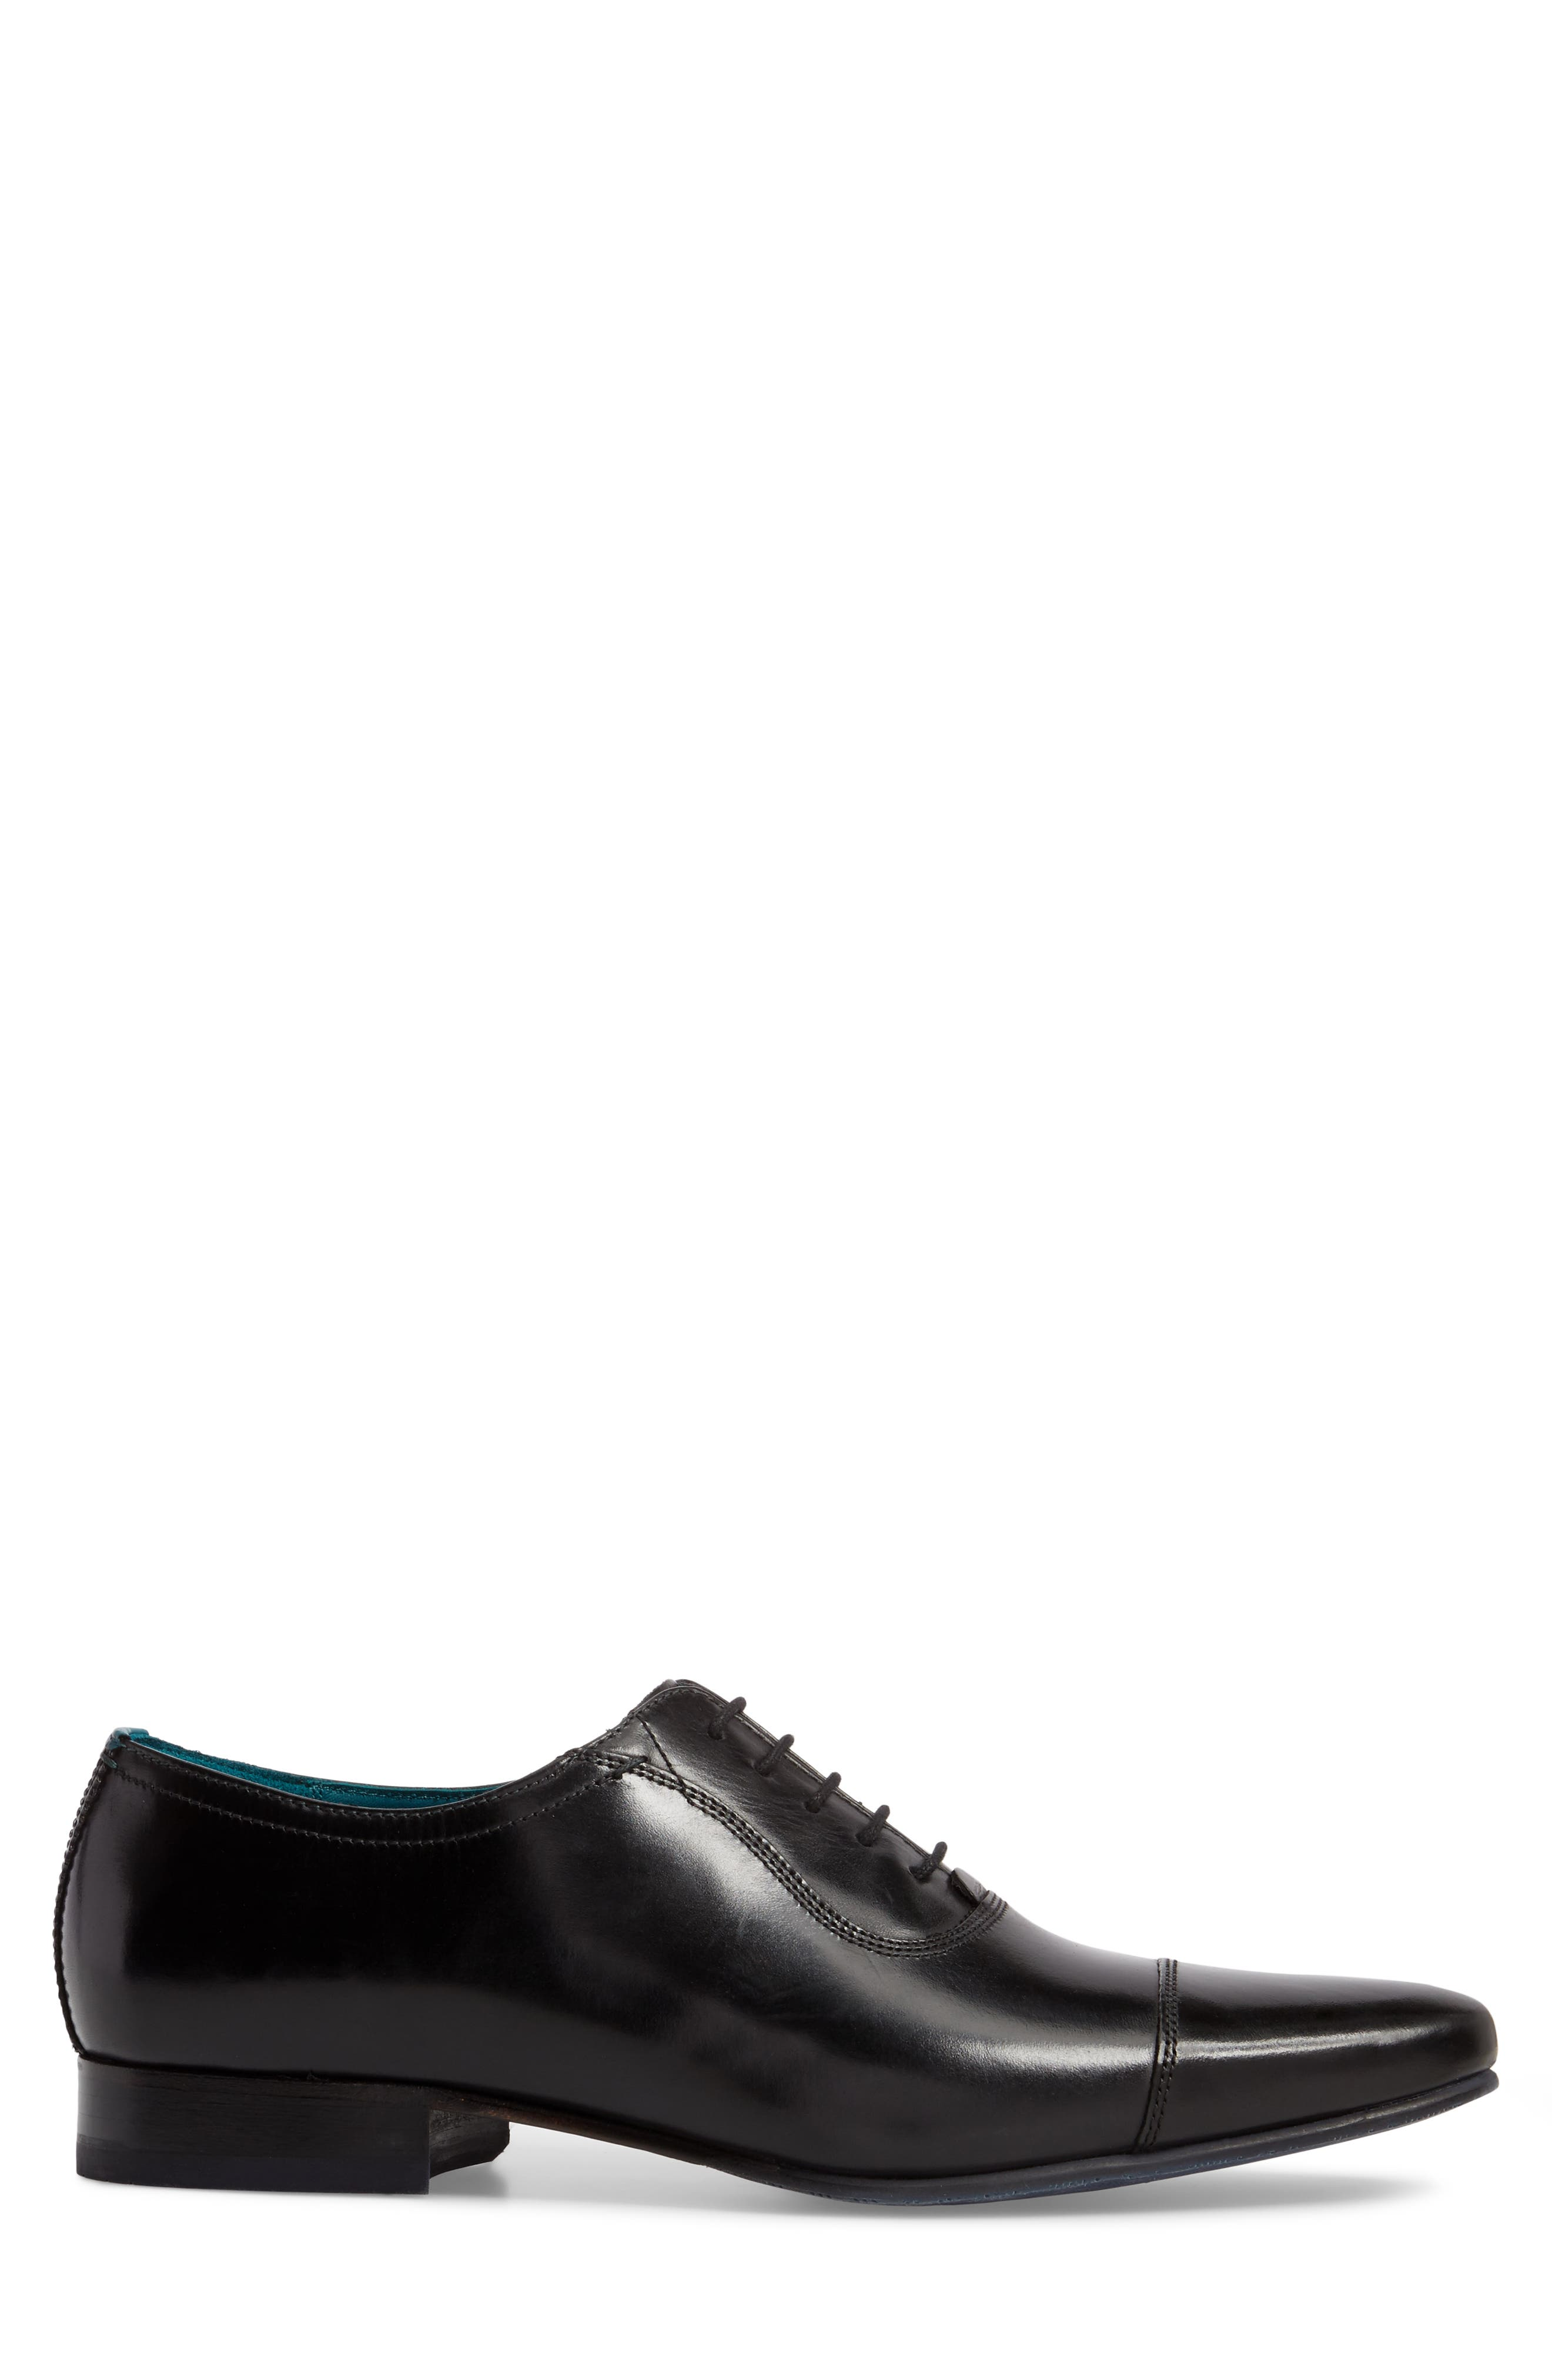 TED BAKER LONDON, Karney Cap Toe Oxford, Alternate thumbnail 3, color, BLACK LEATHER